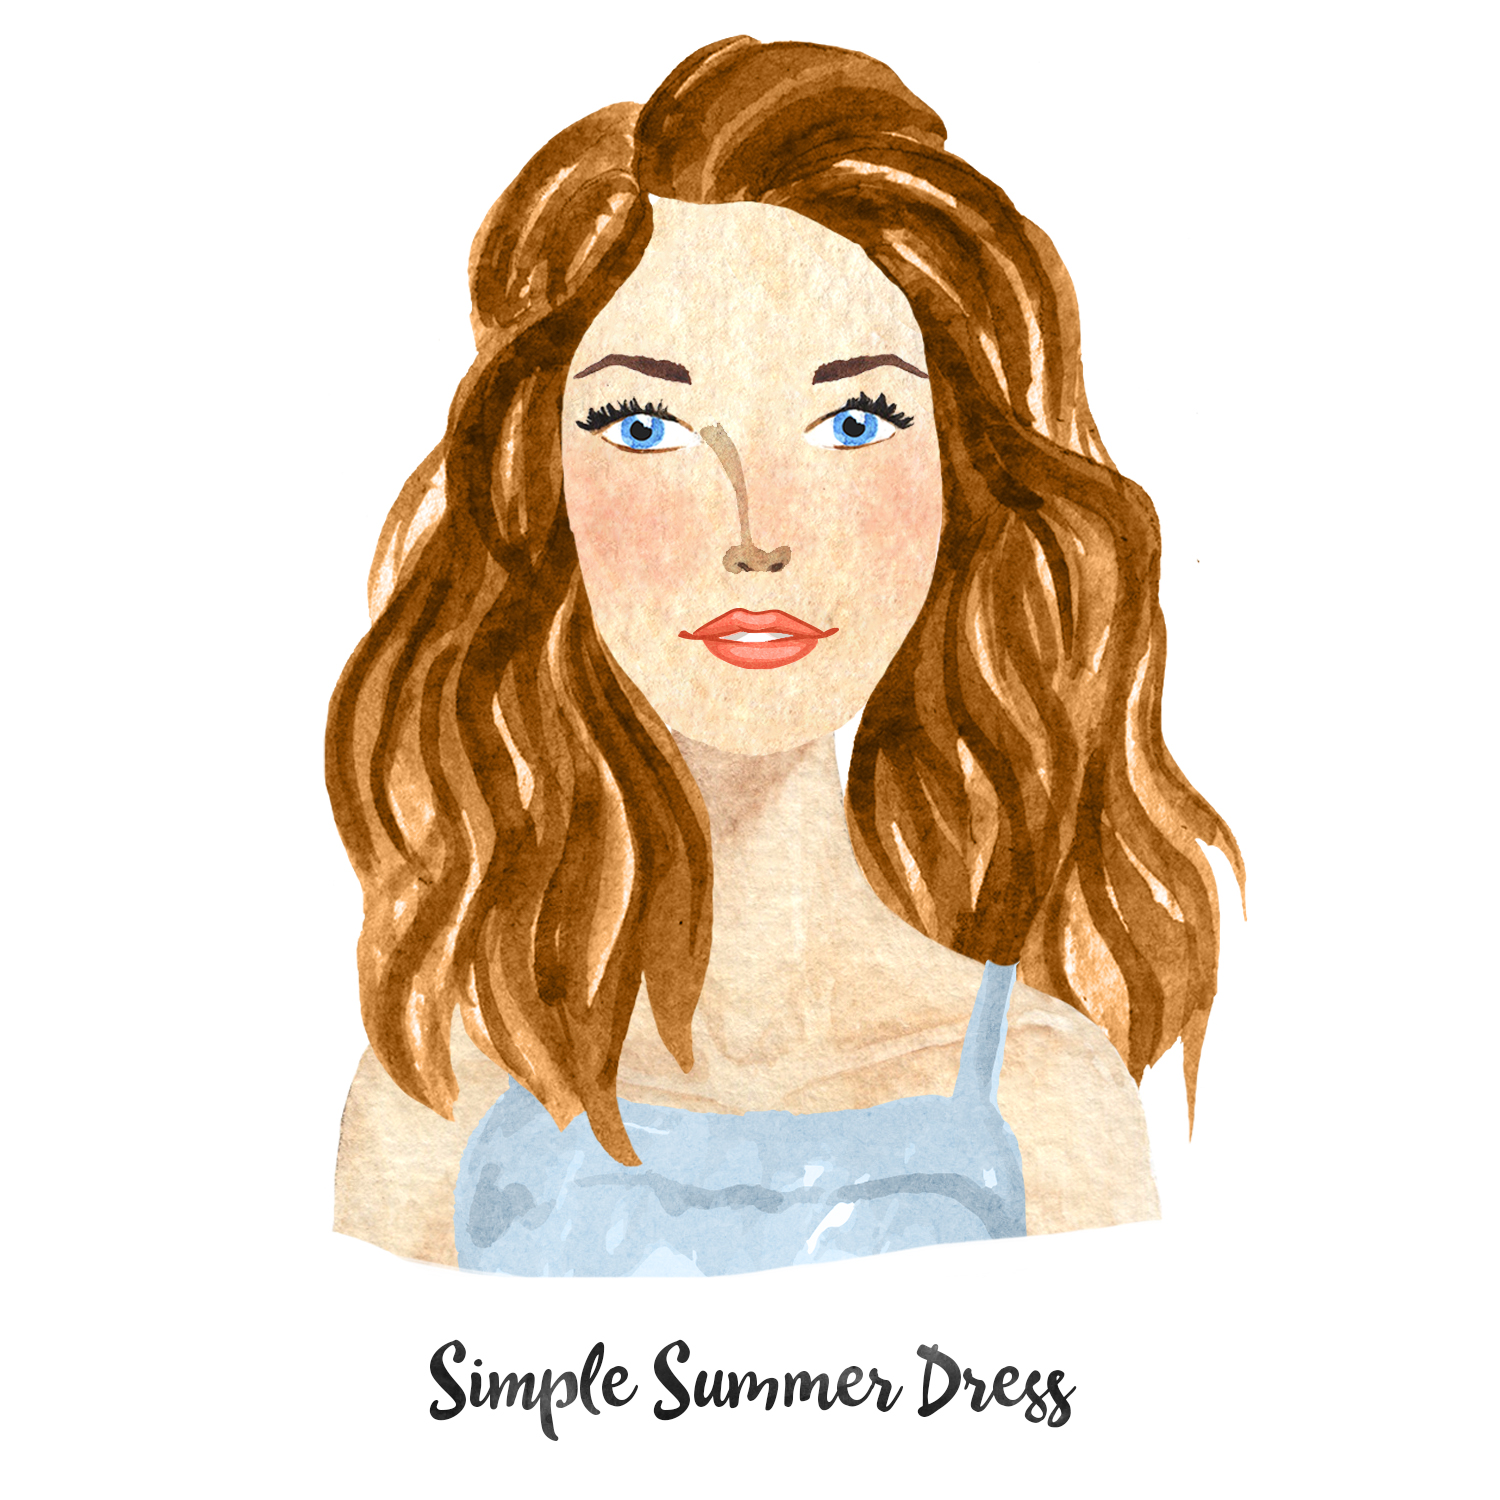 Simple Summer Dress.jpg